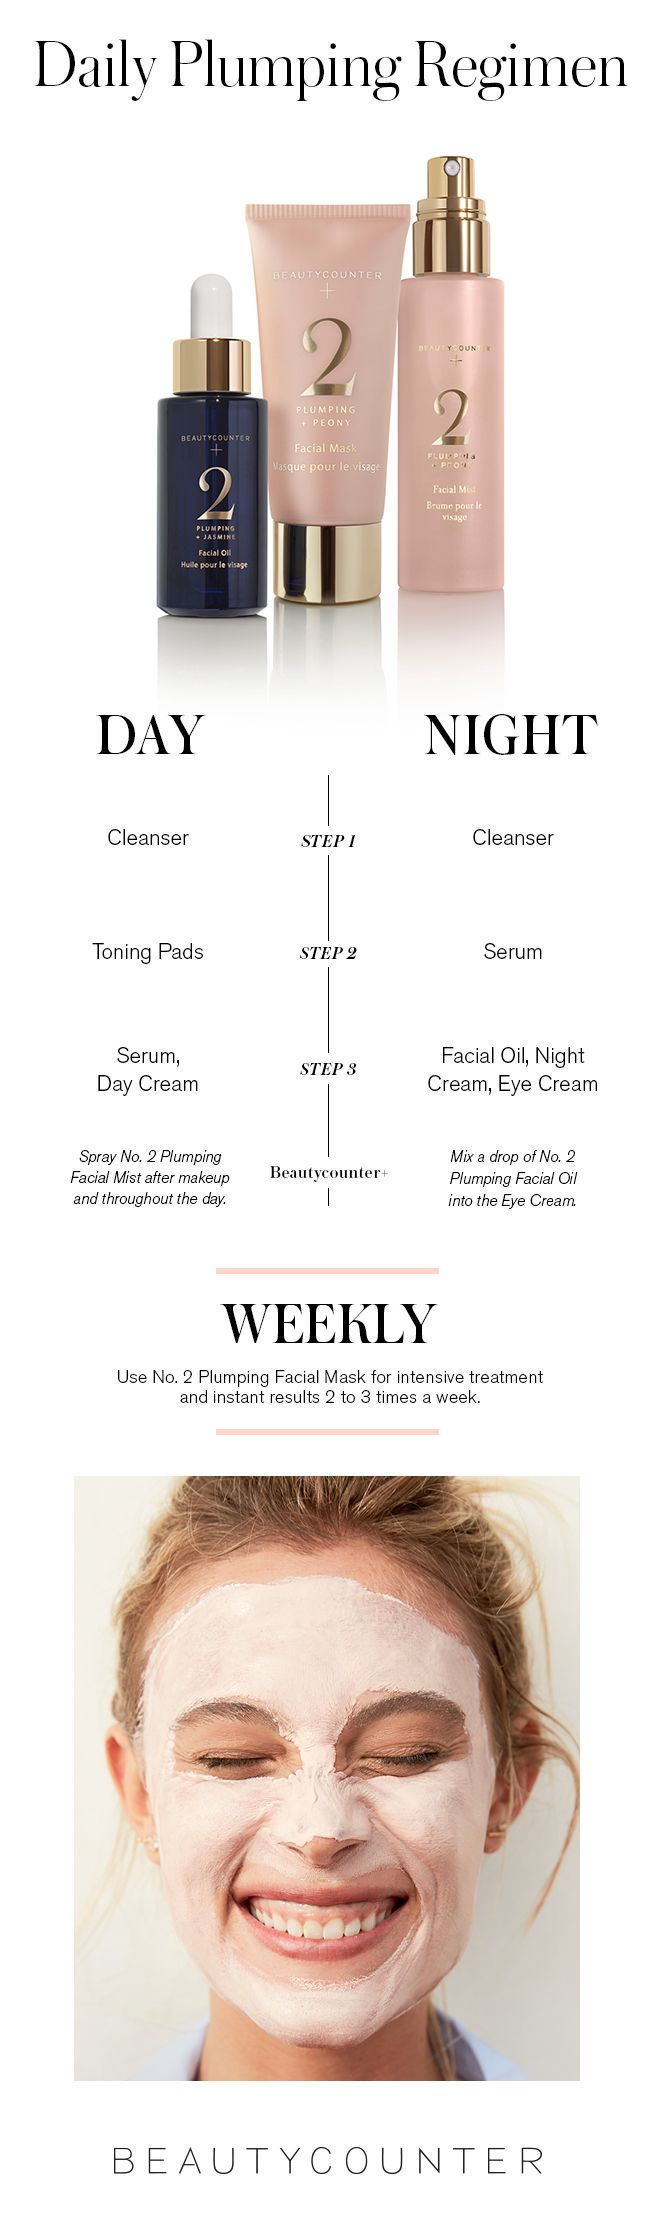 As the years pass, your skin definitely changes, so it makes sense that your skin care routine should, too. This doesn't mean you need to overhaul your beauty arsenal with a 20-step regimen (seriously, who has time for that?). But it does mean it's a good idea to start weaving treatments into your core beauty regimen for firmer skin.